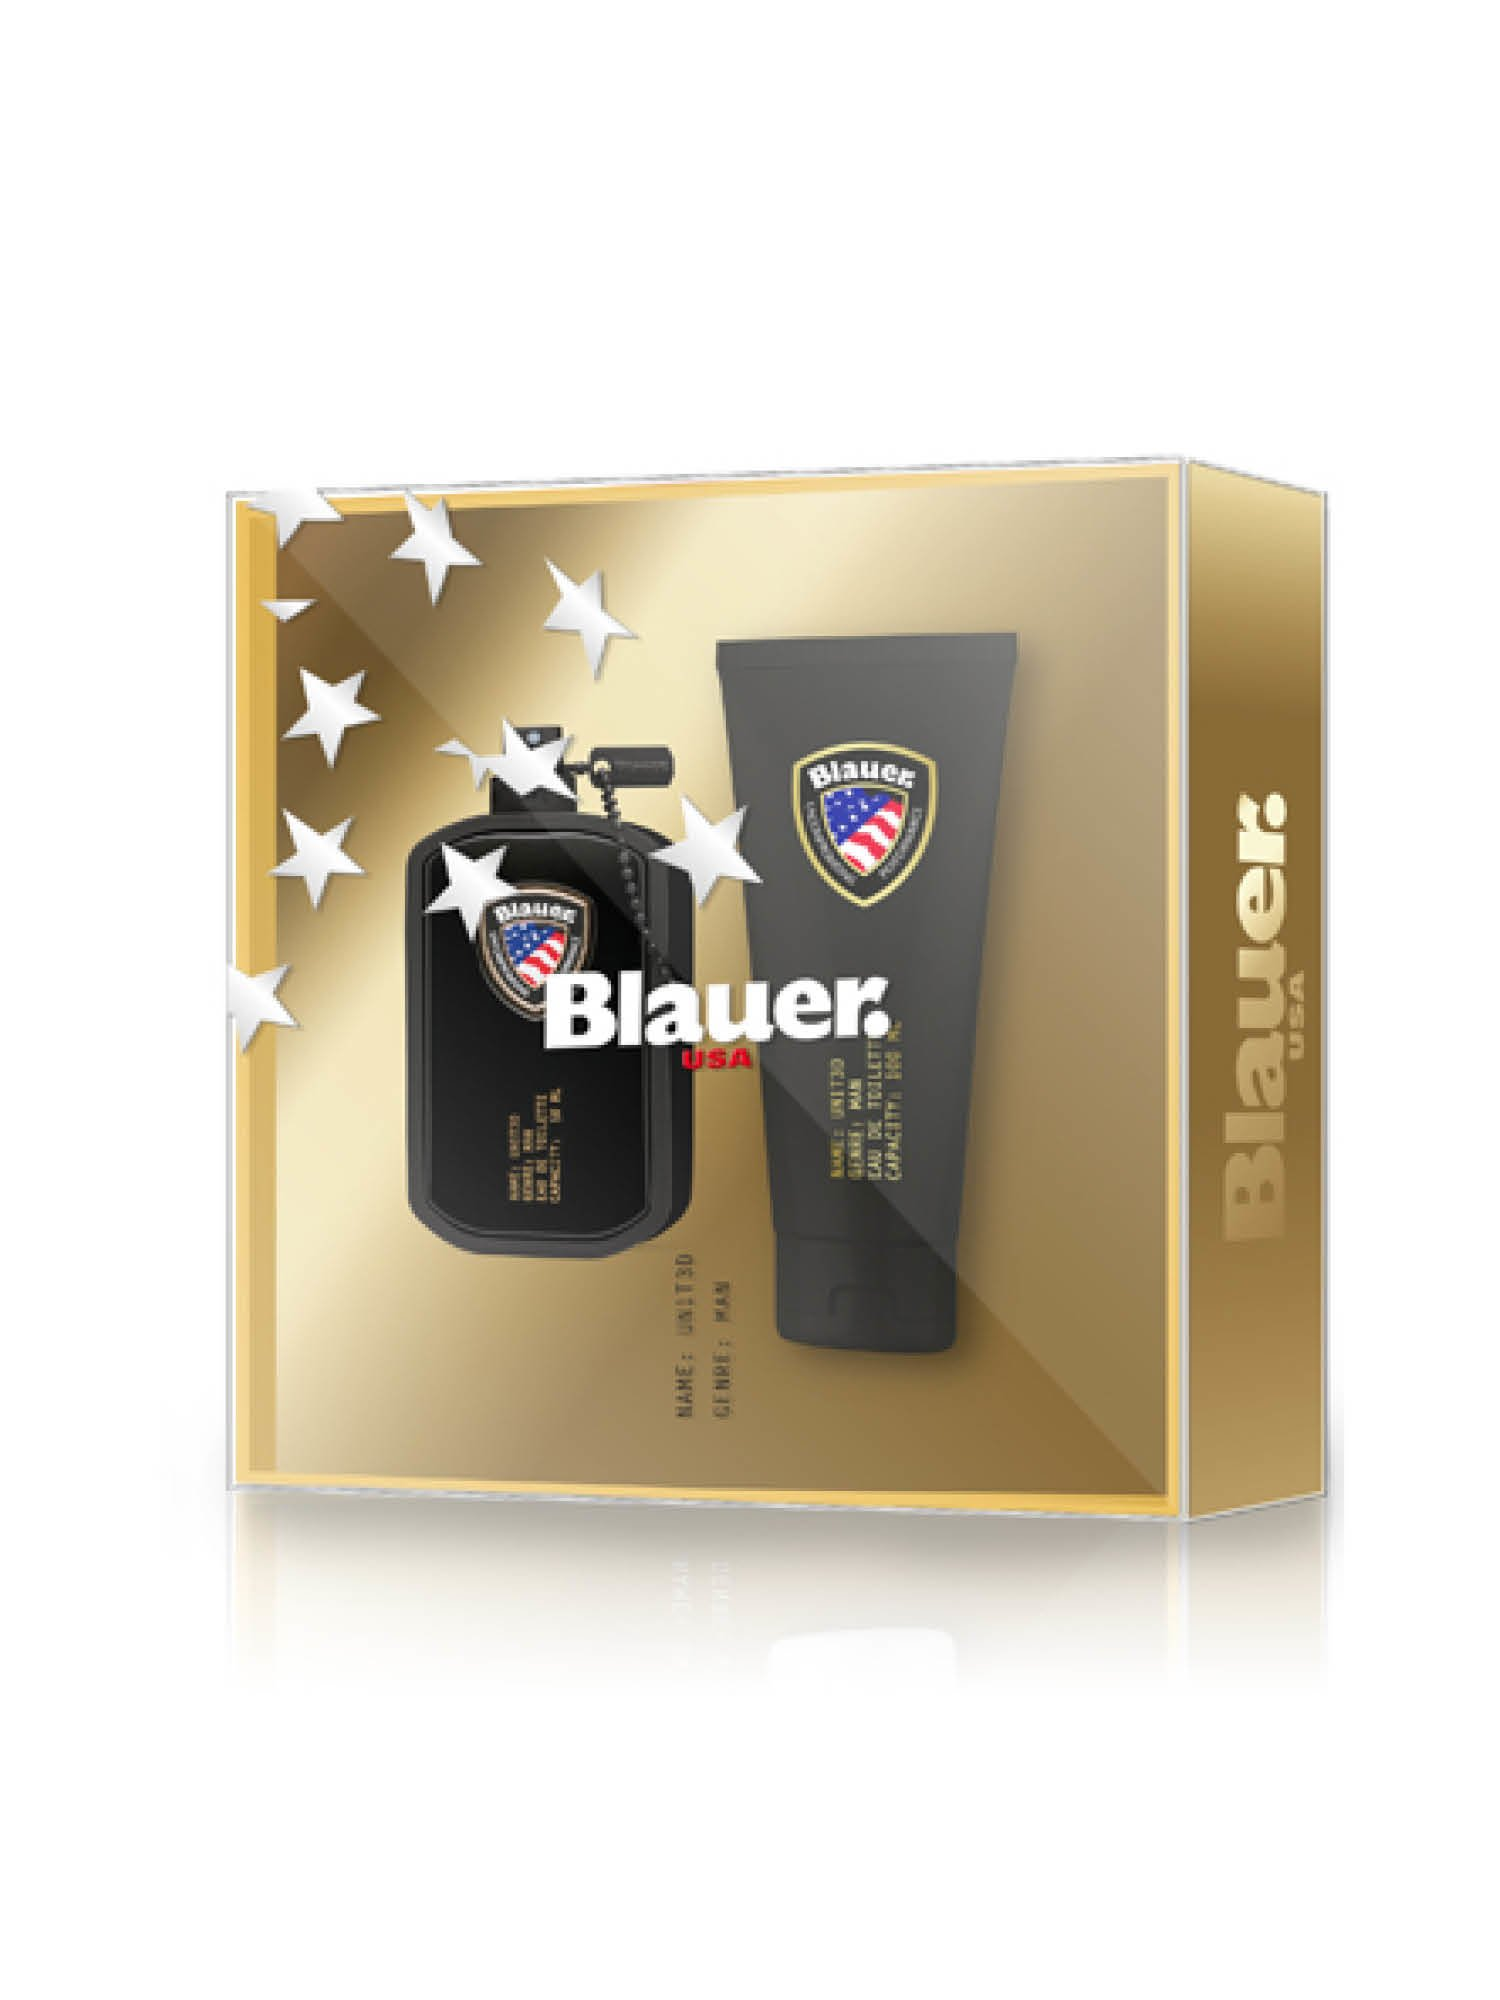 Blauer - BLAUER UN1T3D COFFRET FOR MAN - золотой - Blauer